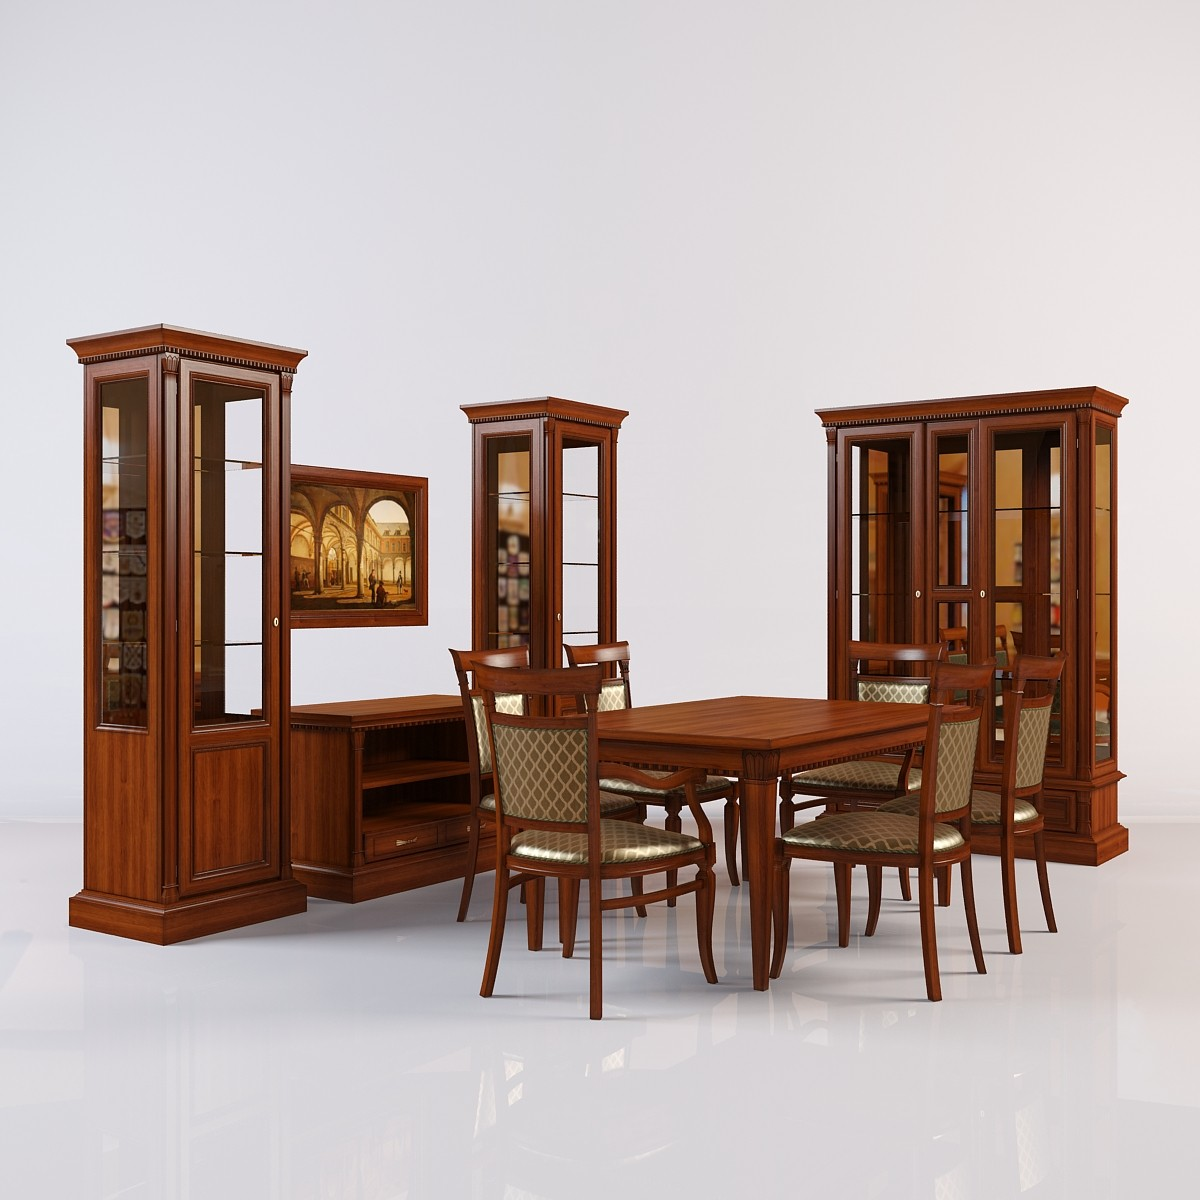 dining room furniture_Florida - Venezia3_1.jpg